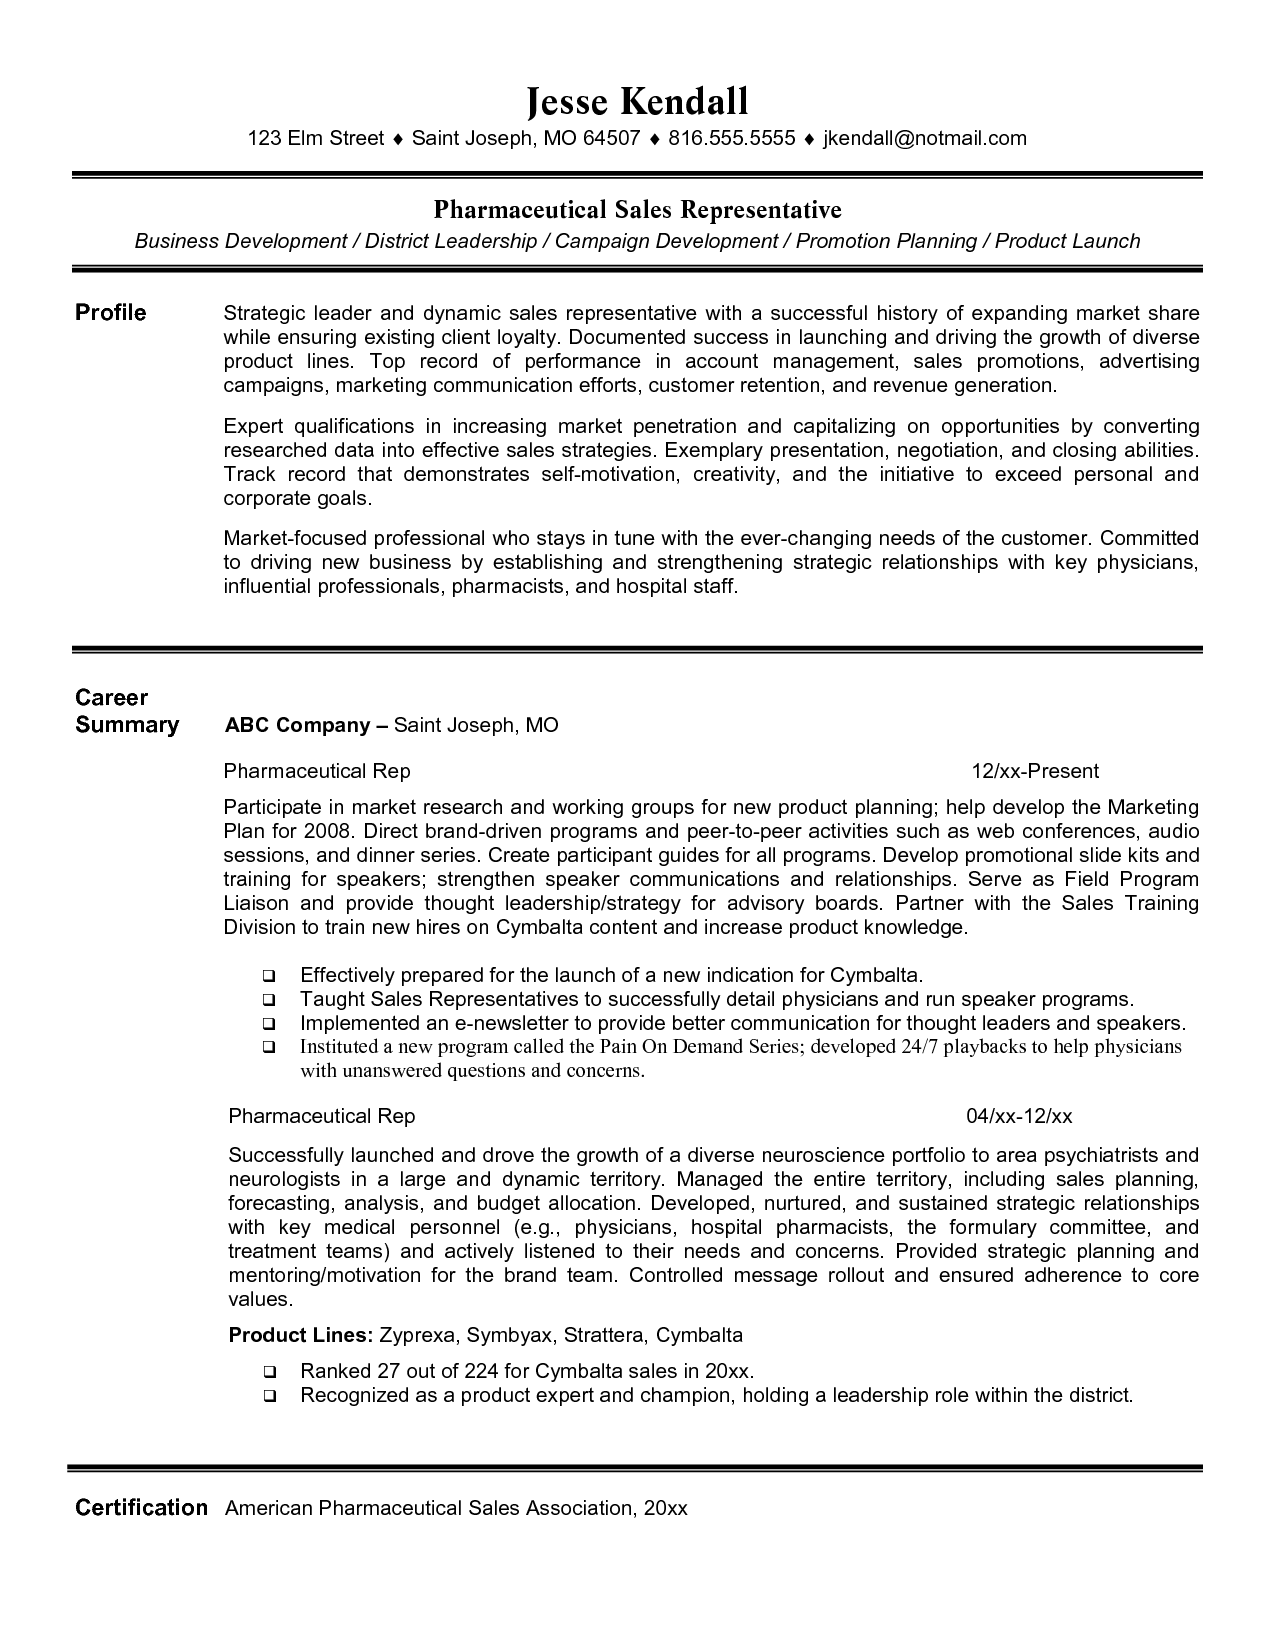 Pharmaceutical Sales Rep Resume Sample Entry Level Pharmaceutical Sales  Resume  Entry Level Resume Samples